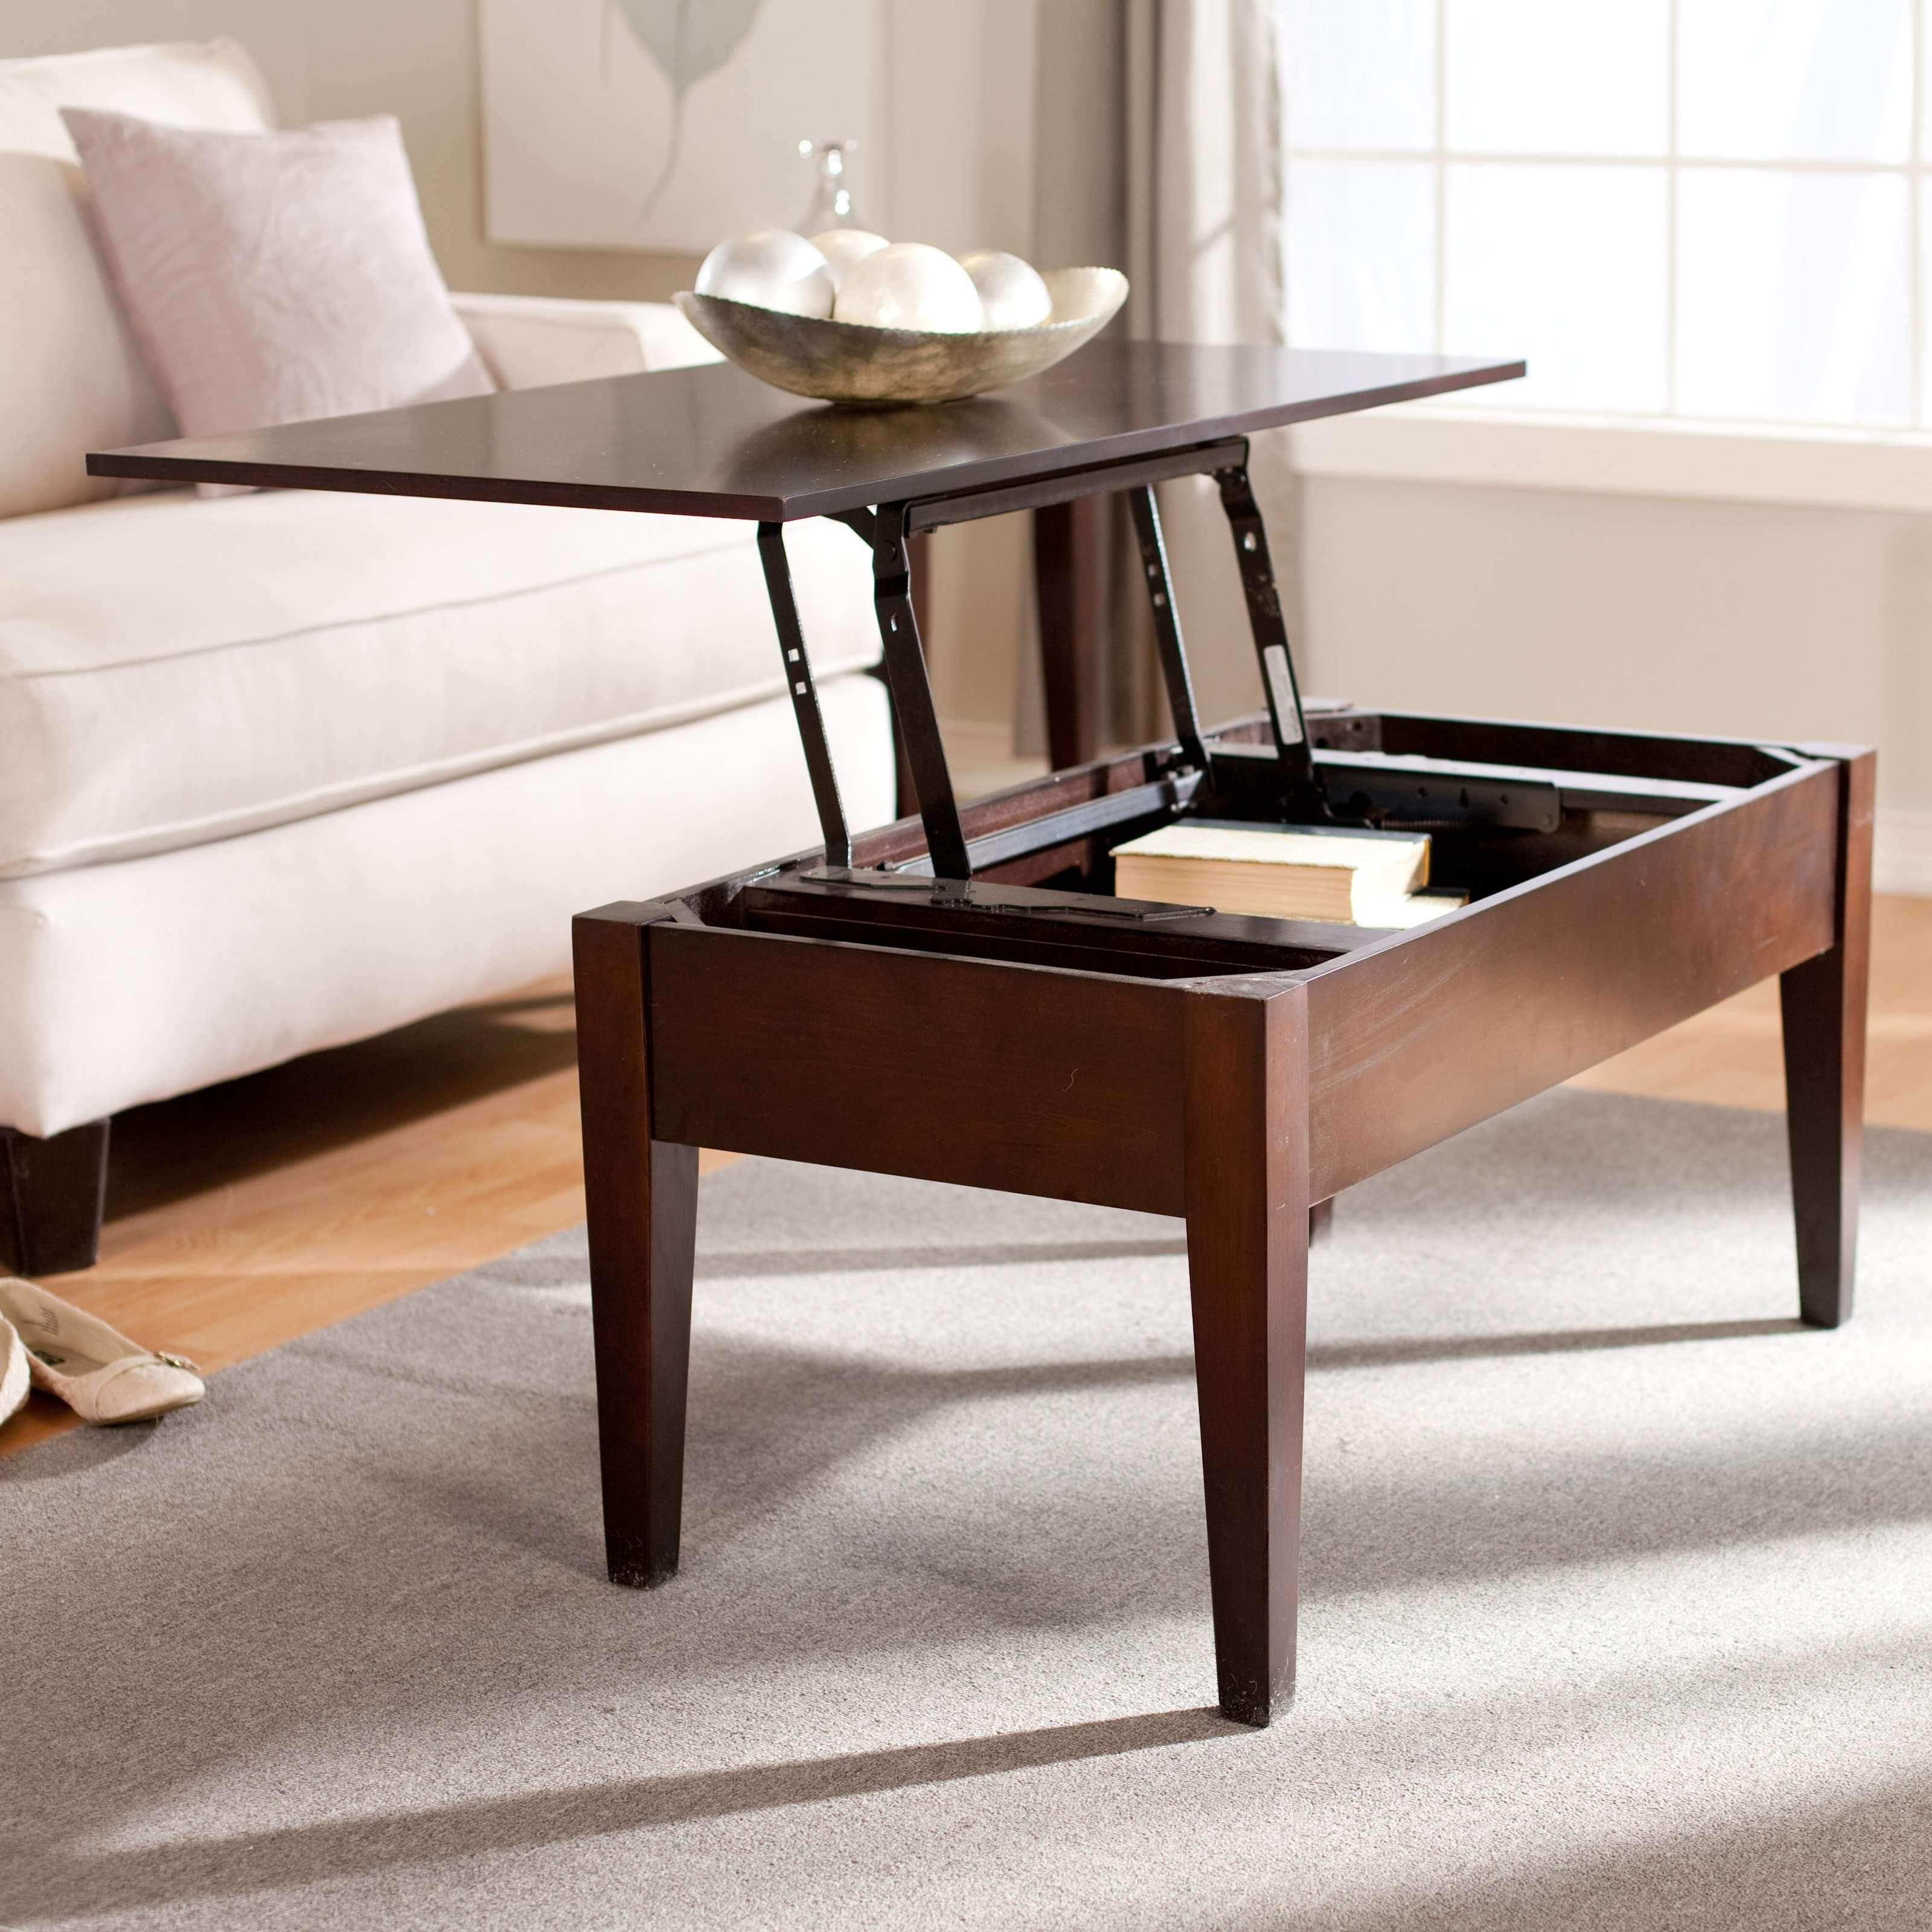 Most Recent Lift Up Coffee Tables With White Fabric Sofa With Tiny Lift Top Coffee Table On Grey Accent (View 11 of 20)